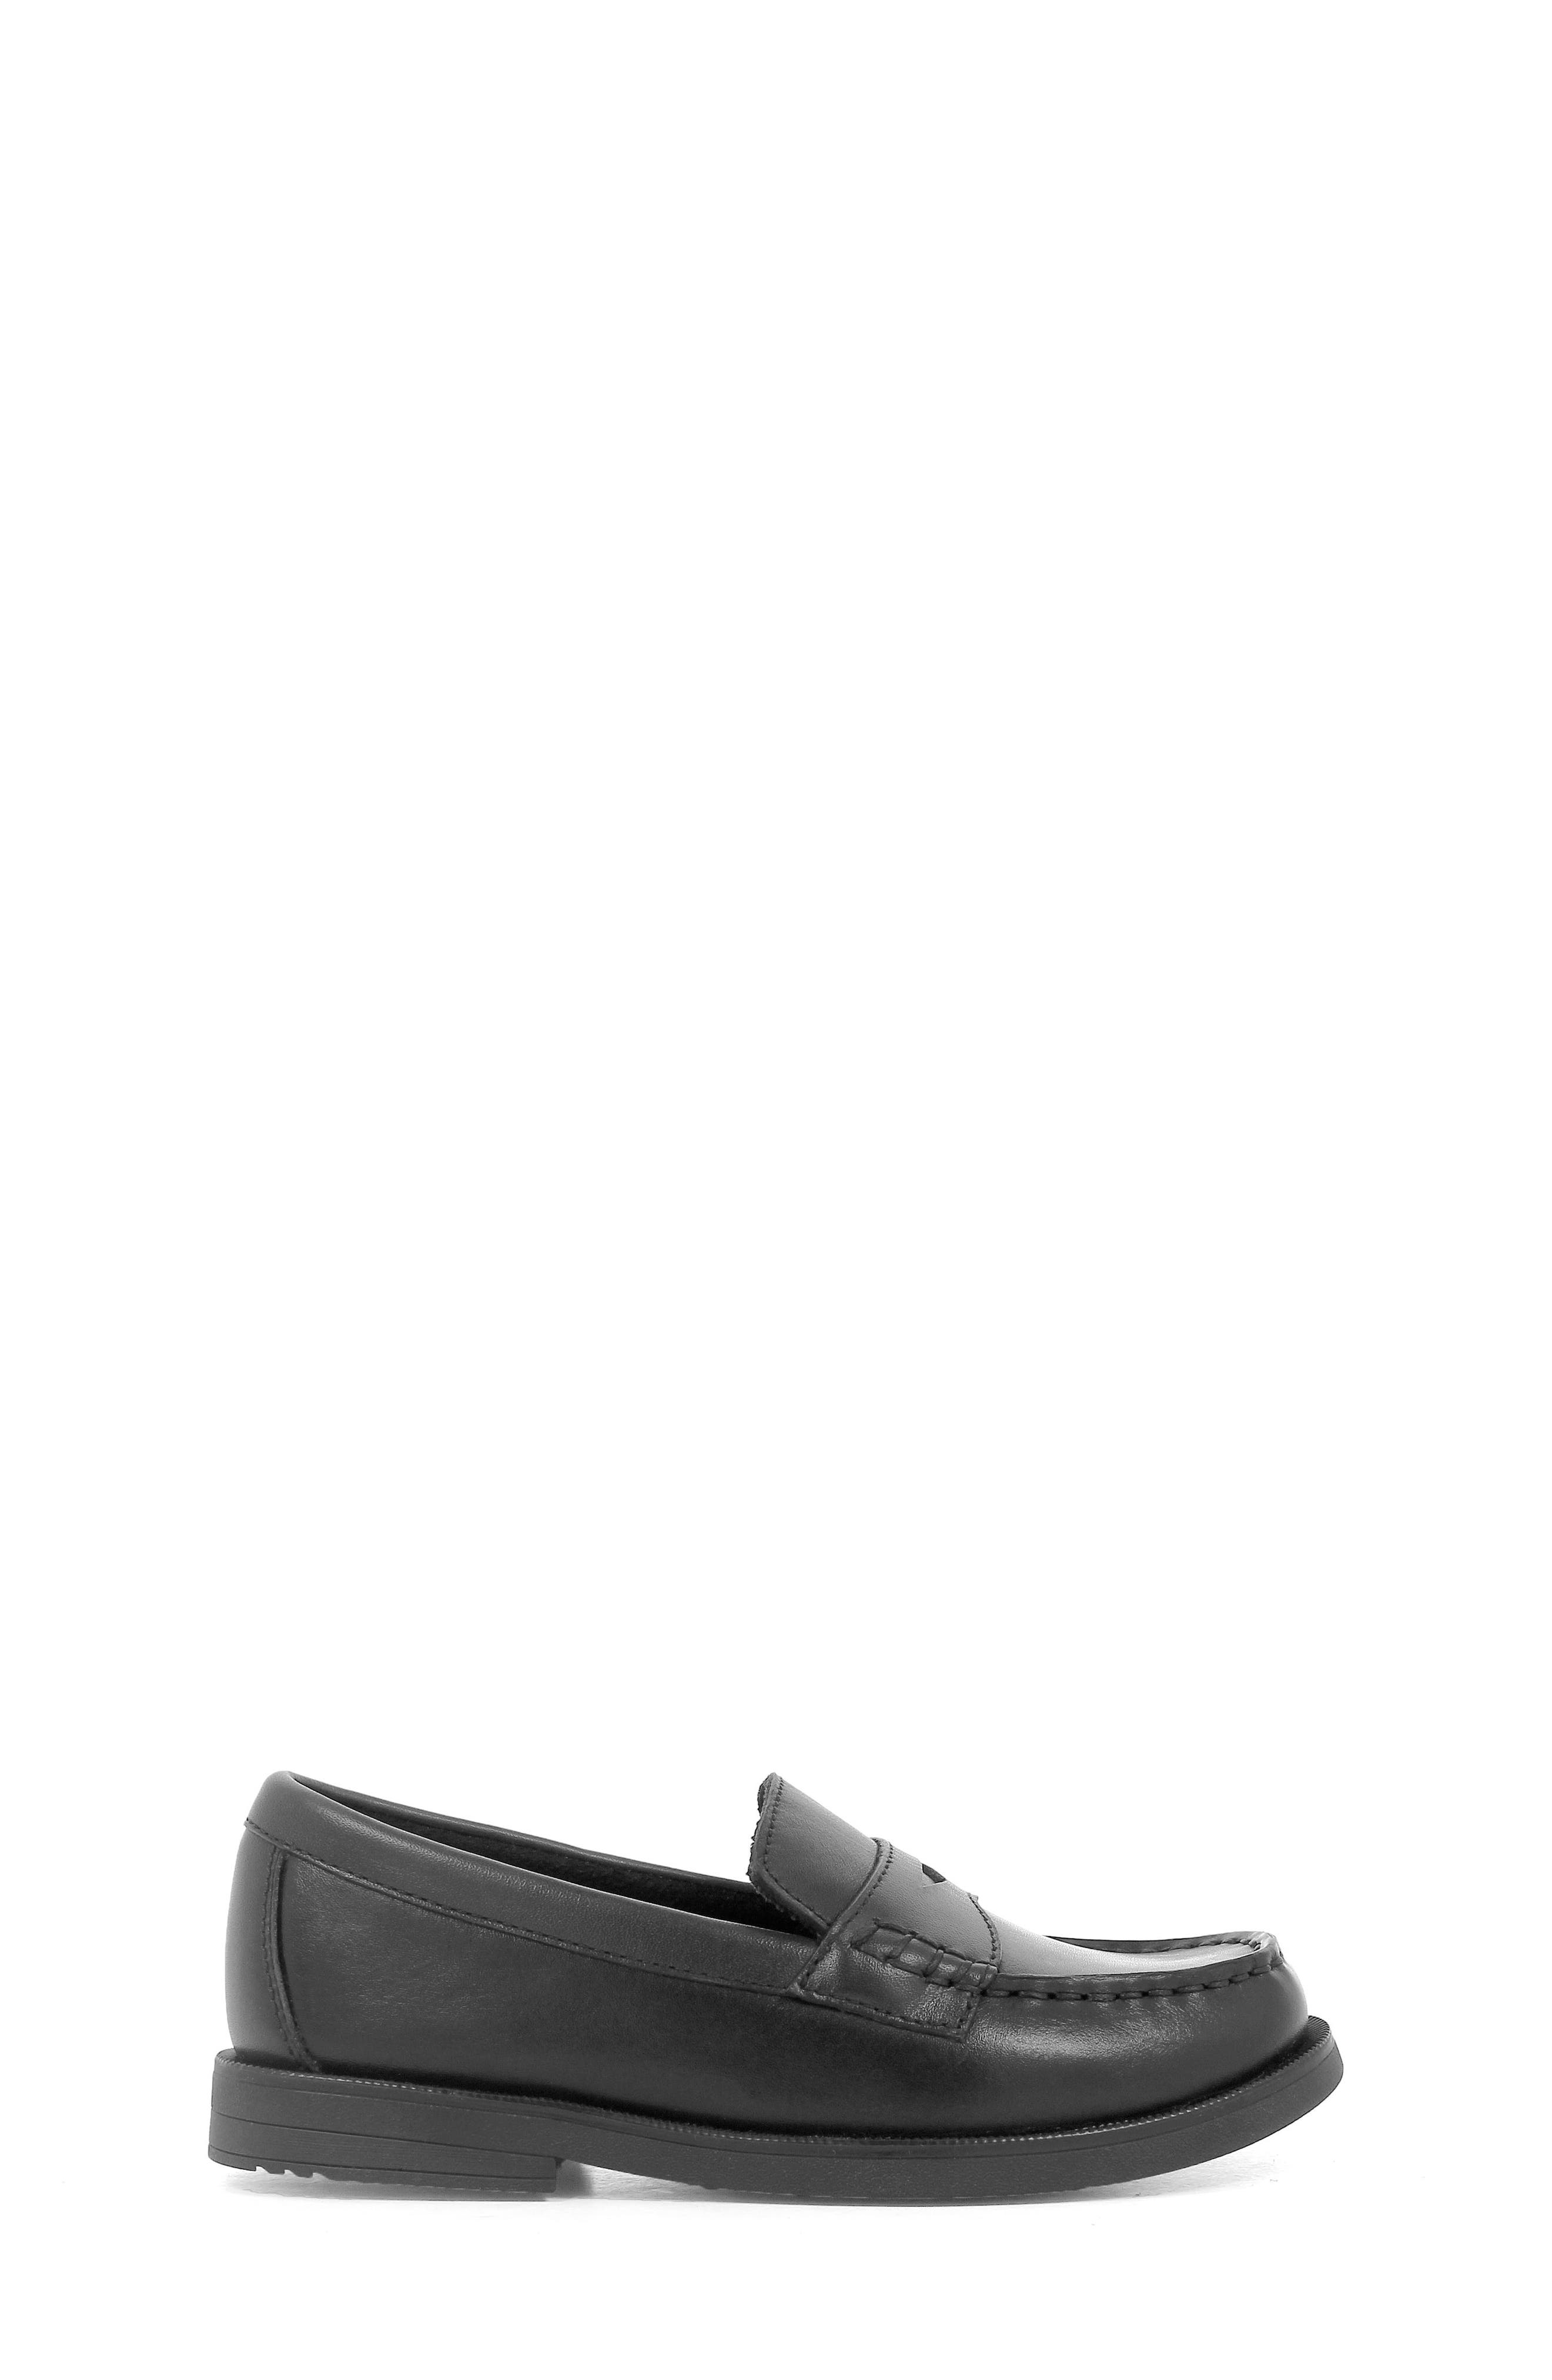 'Croquet' Penny Loafer,                             Alternate thumbnail 4, color,                             BLACK